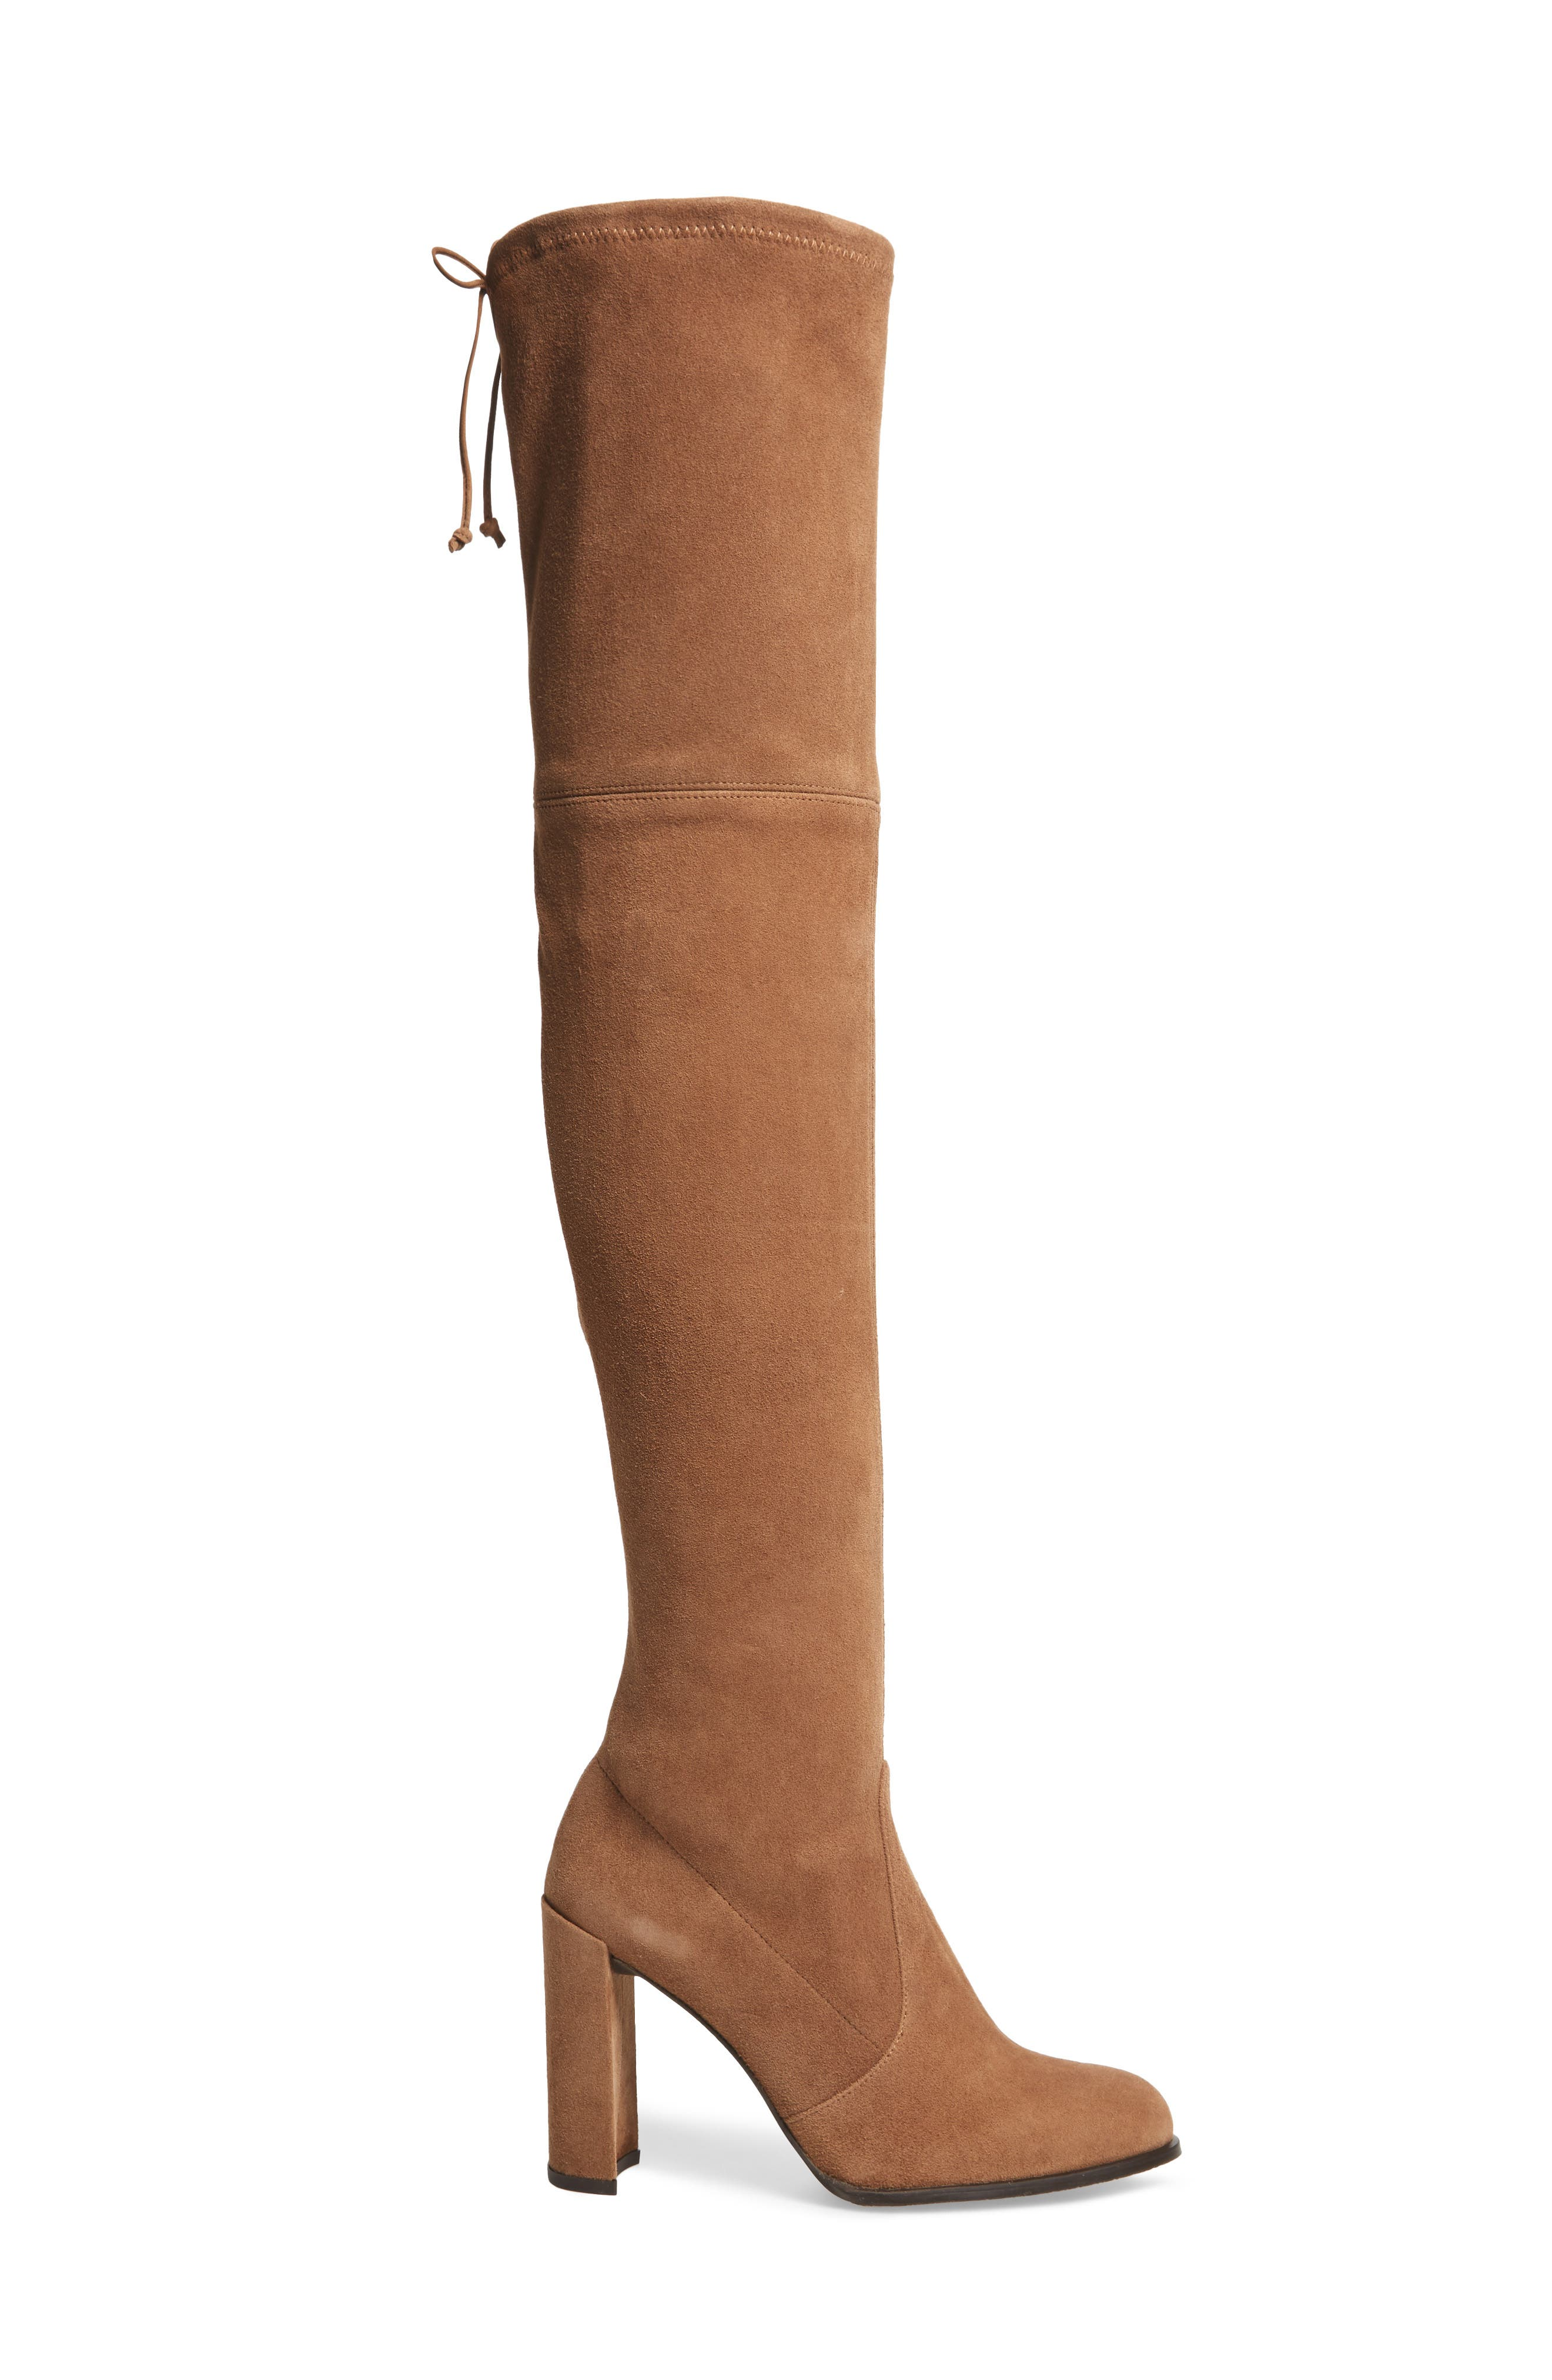 Hiline Over the Knee Boot,                             Alternate thumbnail 3, color,                             Nutmeg Suede